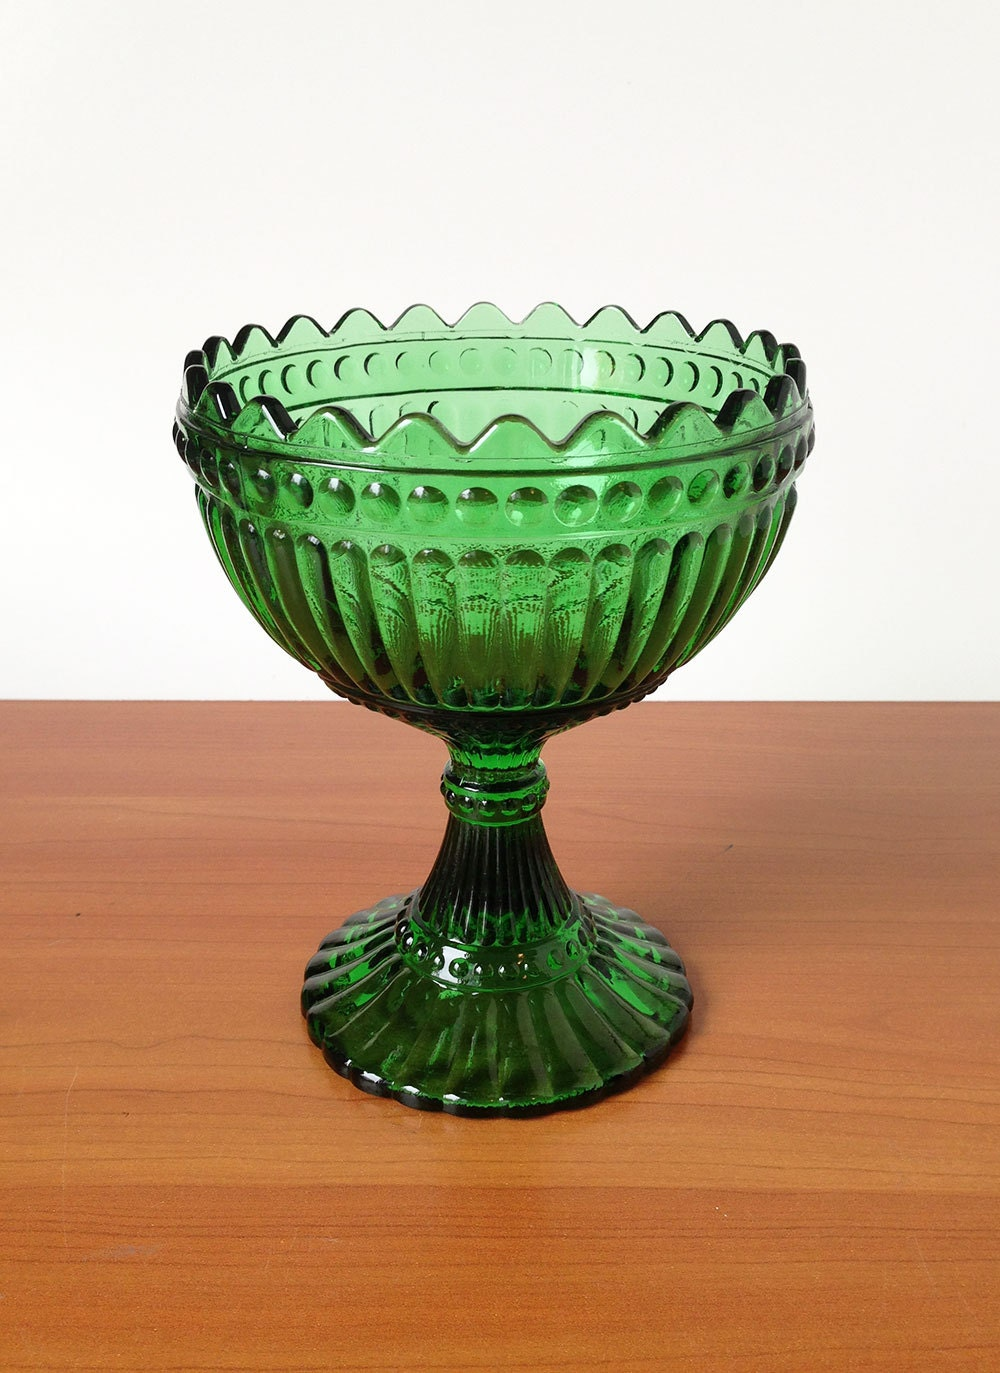 Emerald Green Marimekko Glass Bowl Vintage Candy Iittala